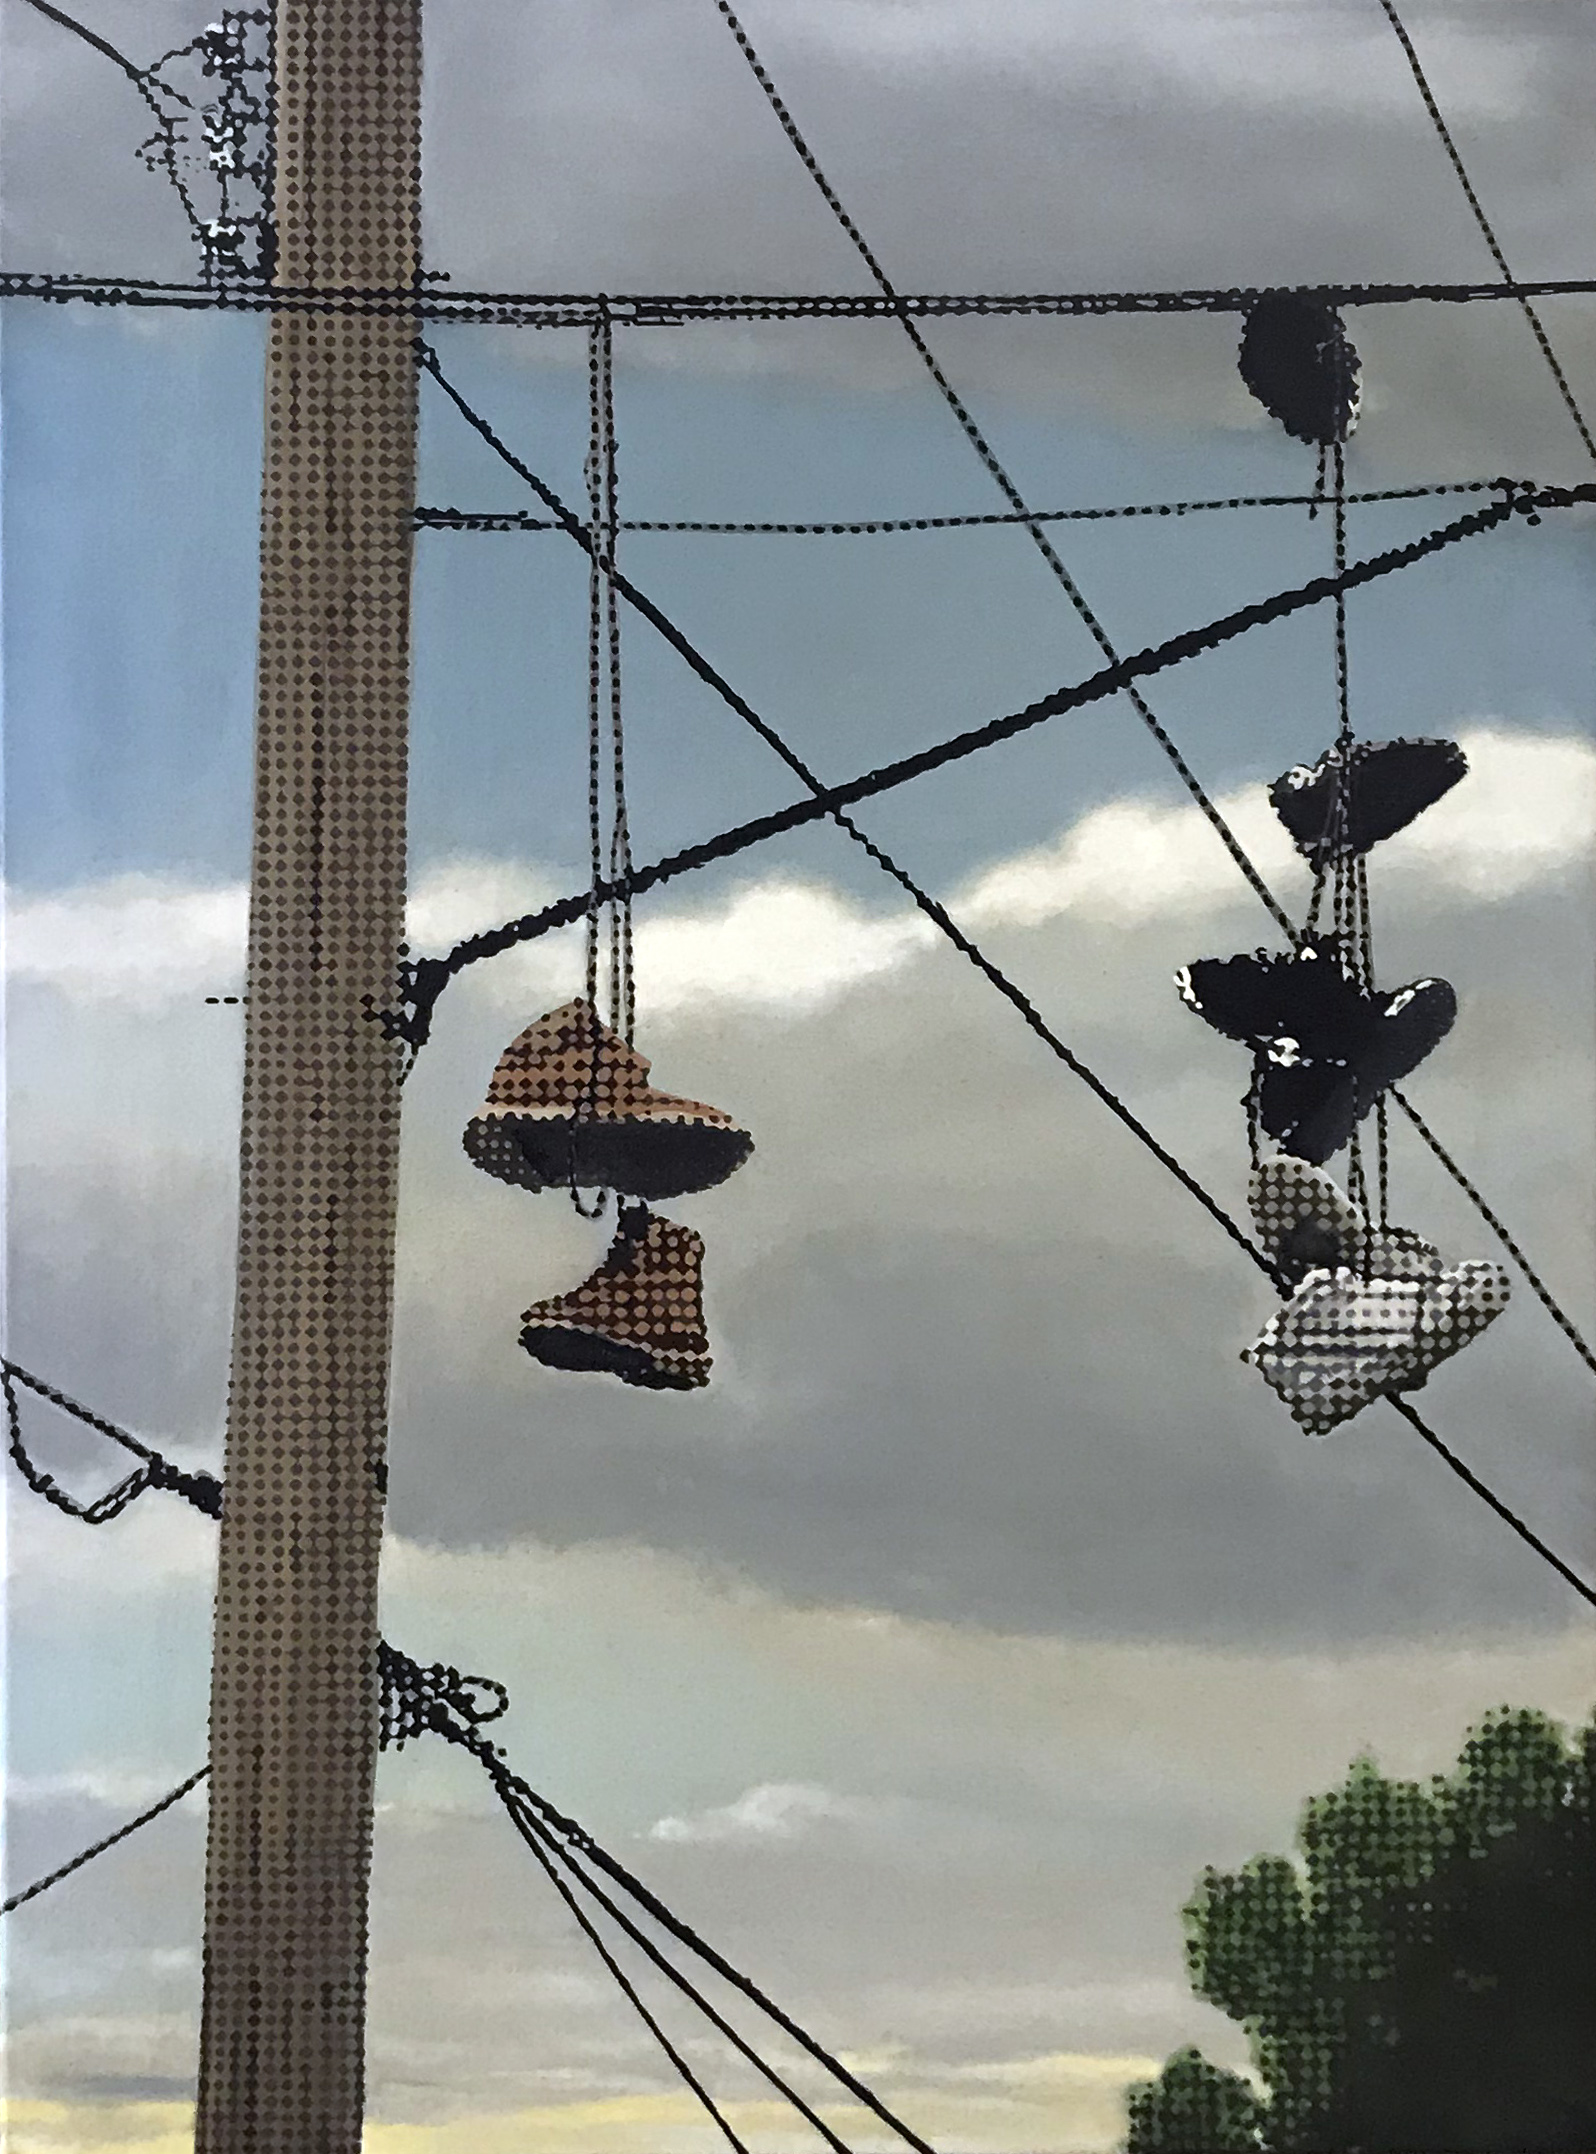 Marc de Jong, Shoefiti 2 oil on linen, 76 x 107 cm, available